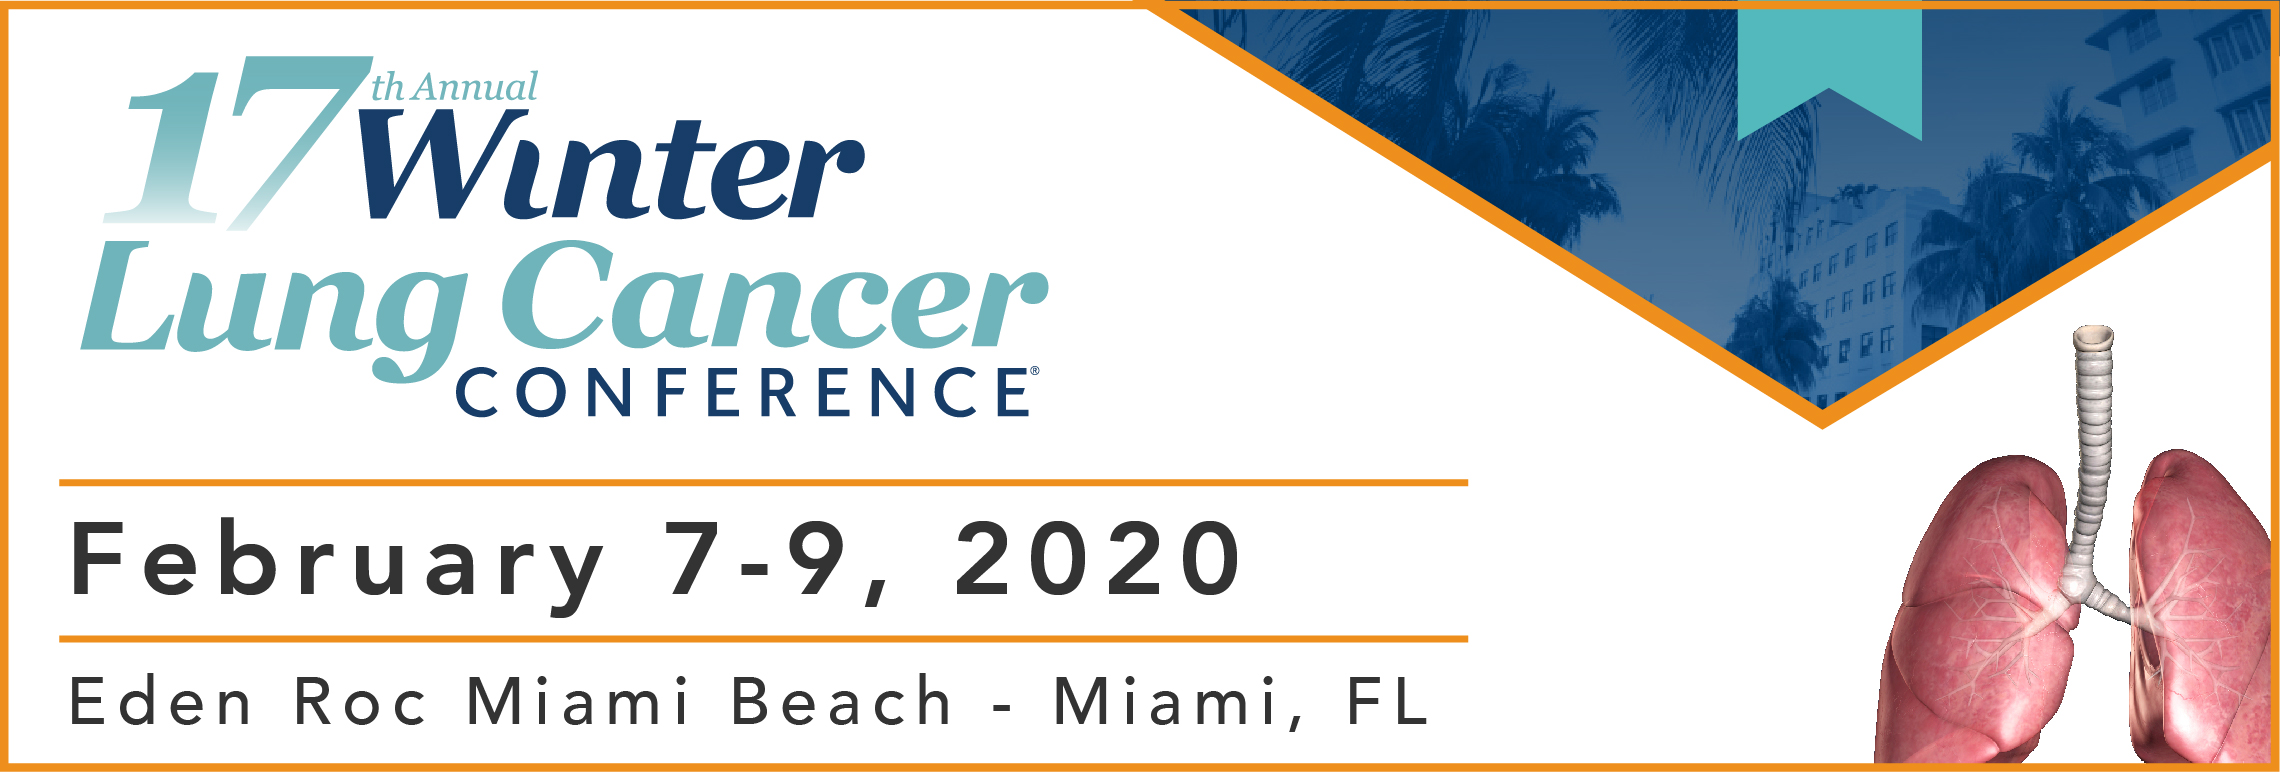 17th Annual Winter Lung Cancer Conference™ | Live CME